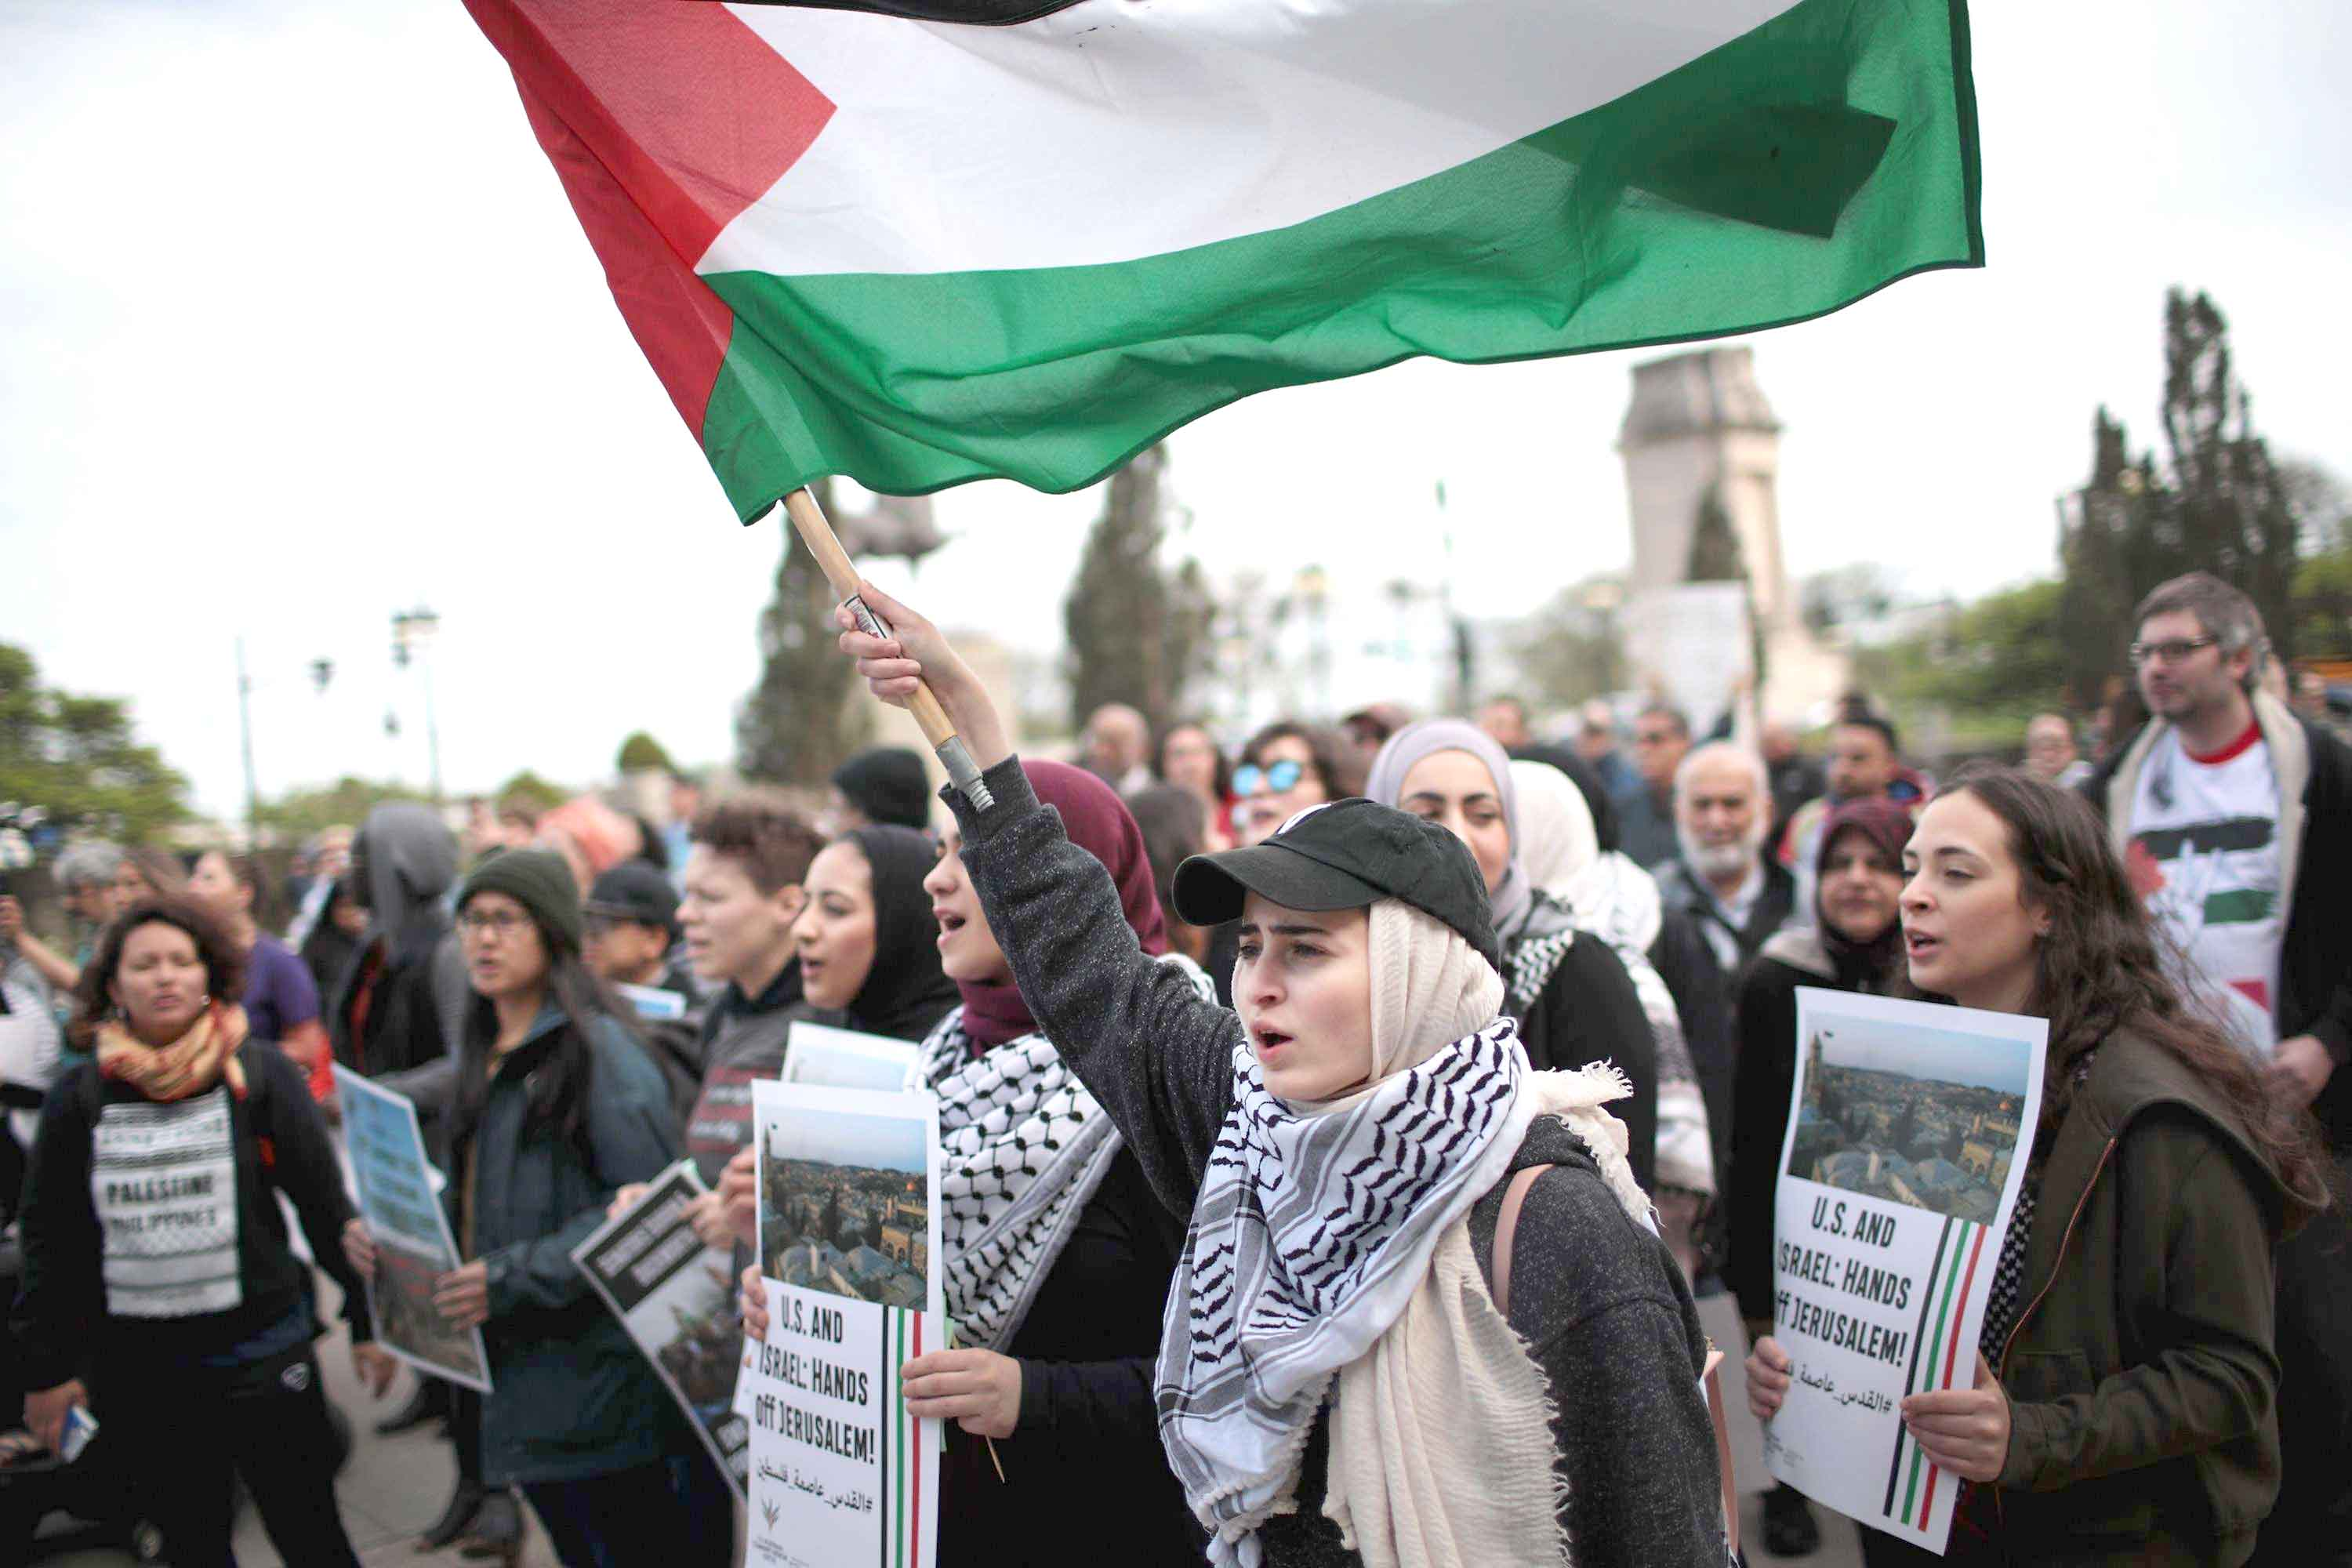 Distrust and anger. Members of the Palestinian community and their supporters protest in Chicago, Illinois.(AFP)